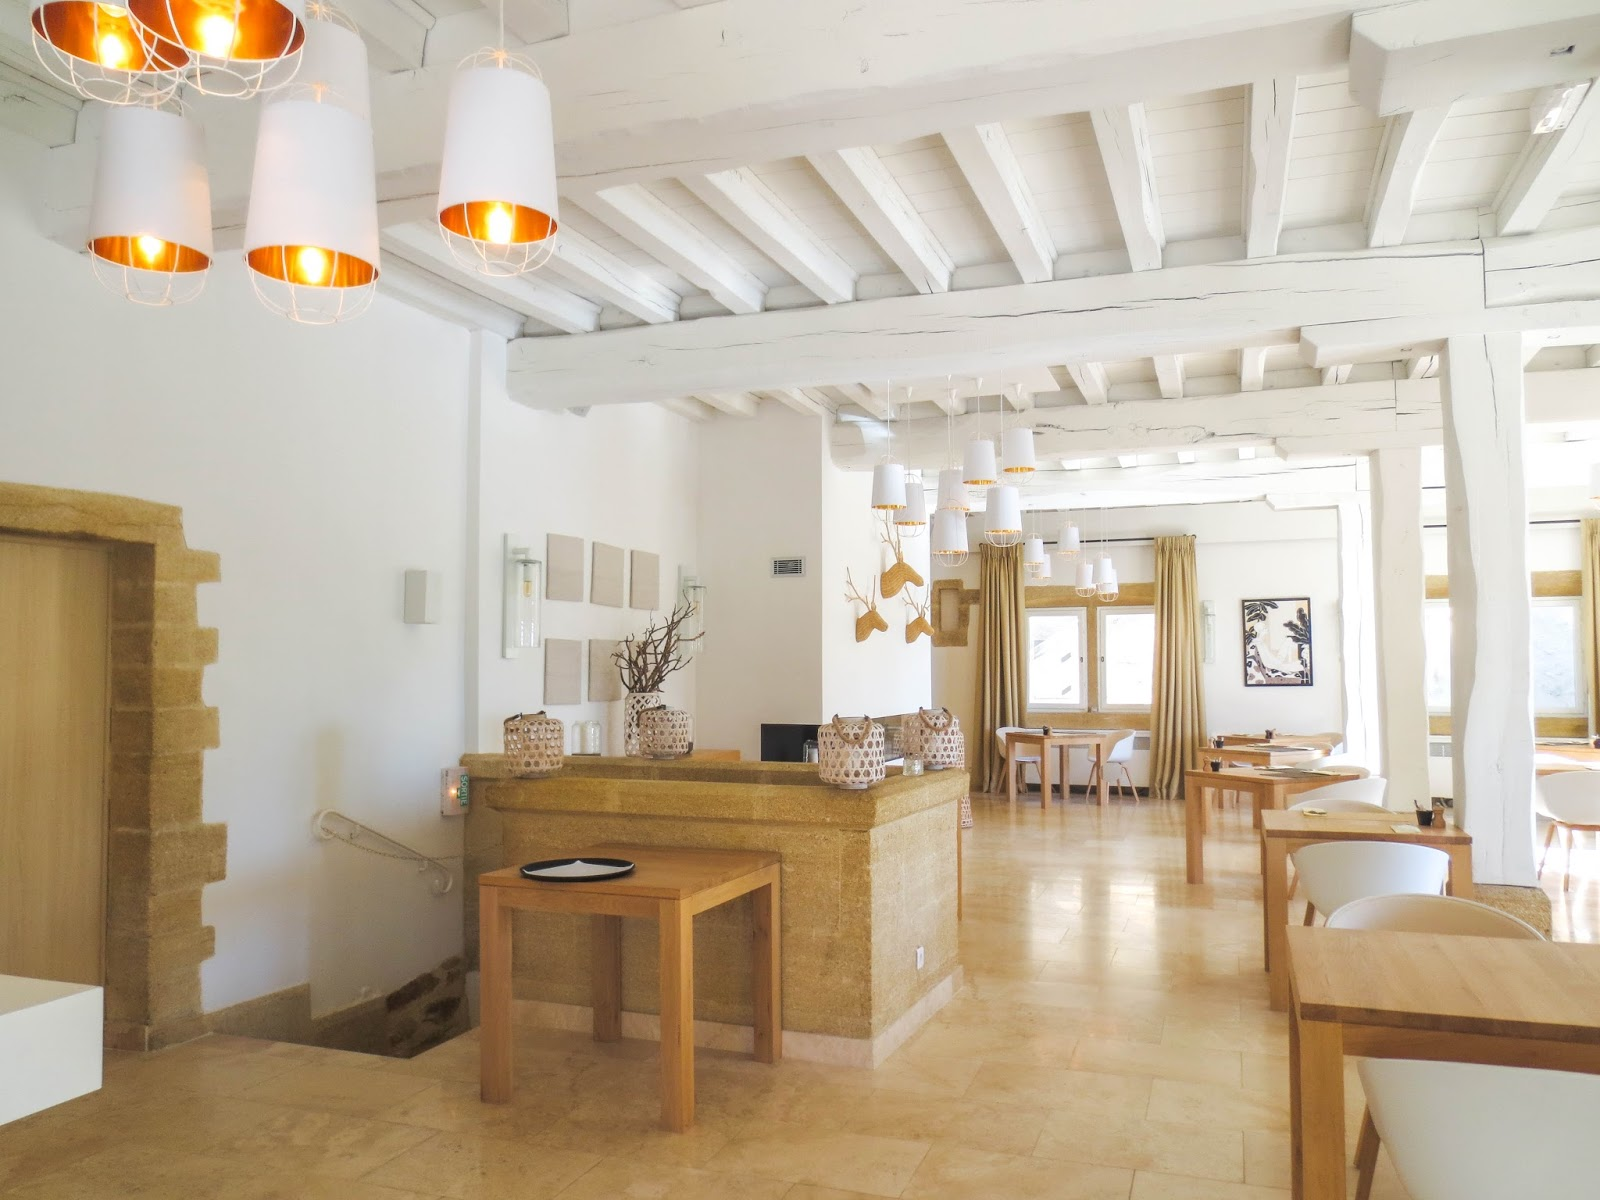 Le Vieux Castillon: Hotel and Restaurant in Provence, France ...